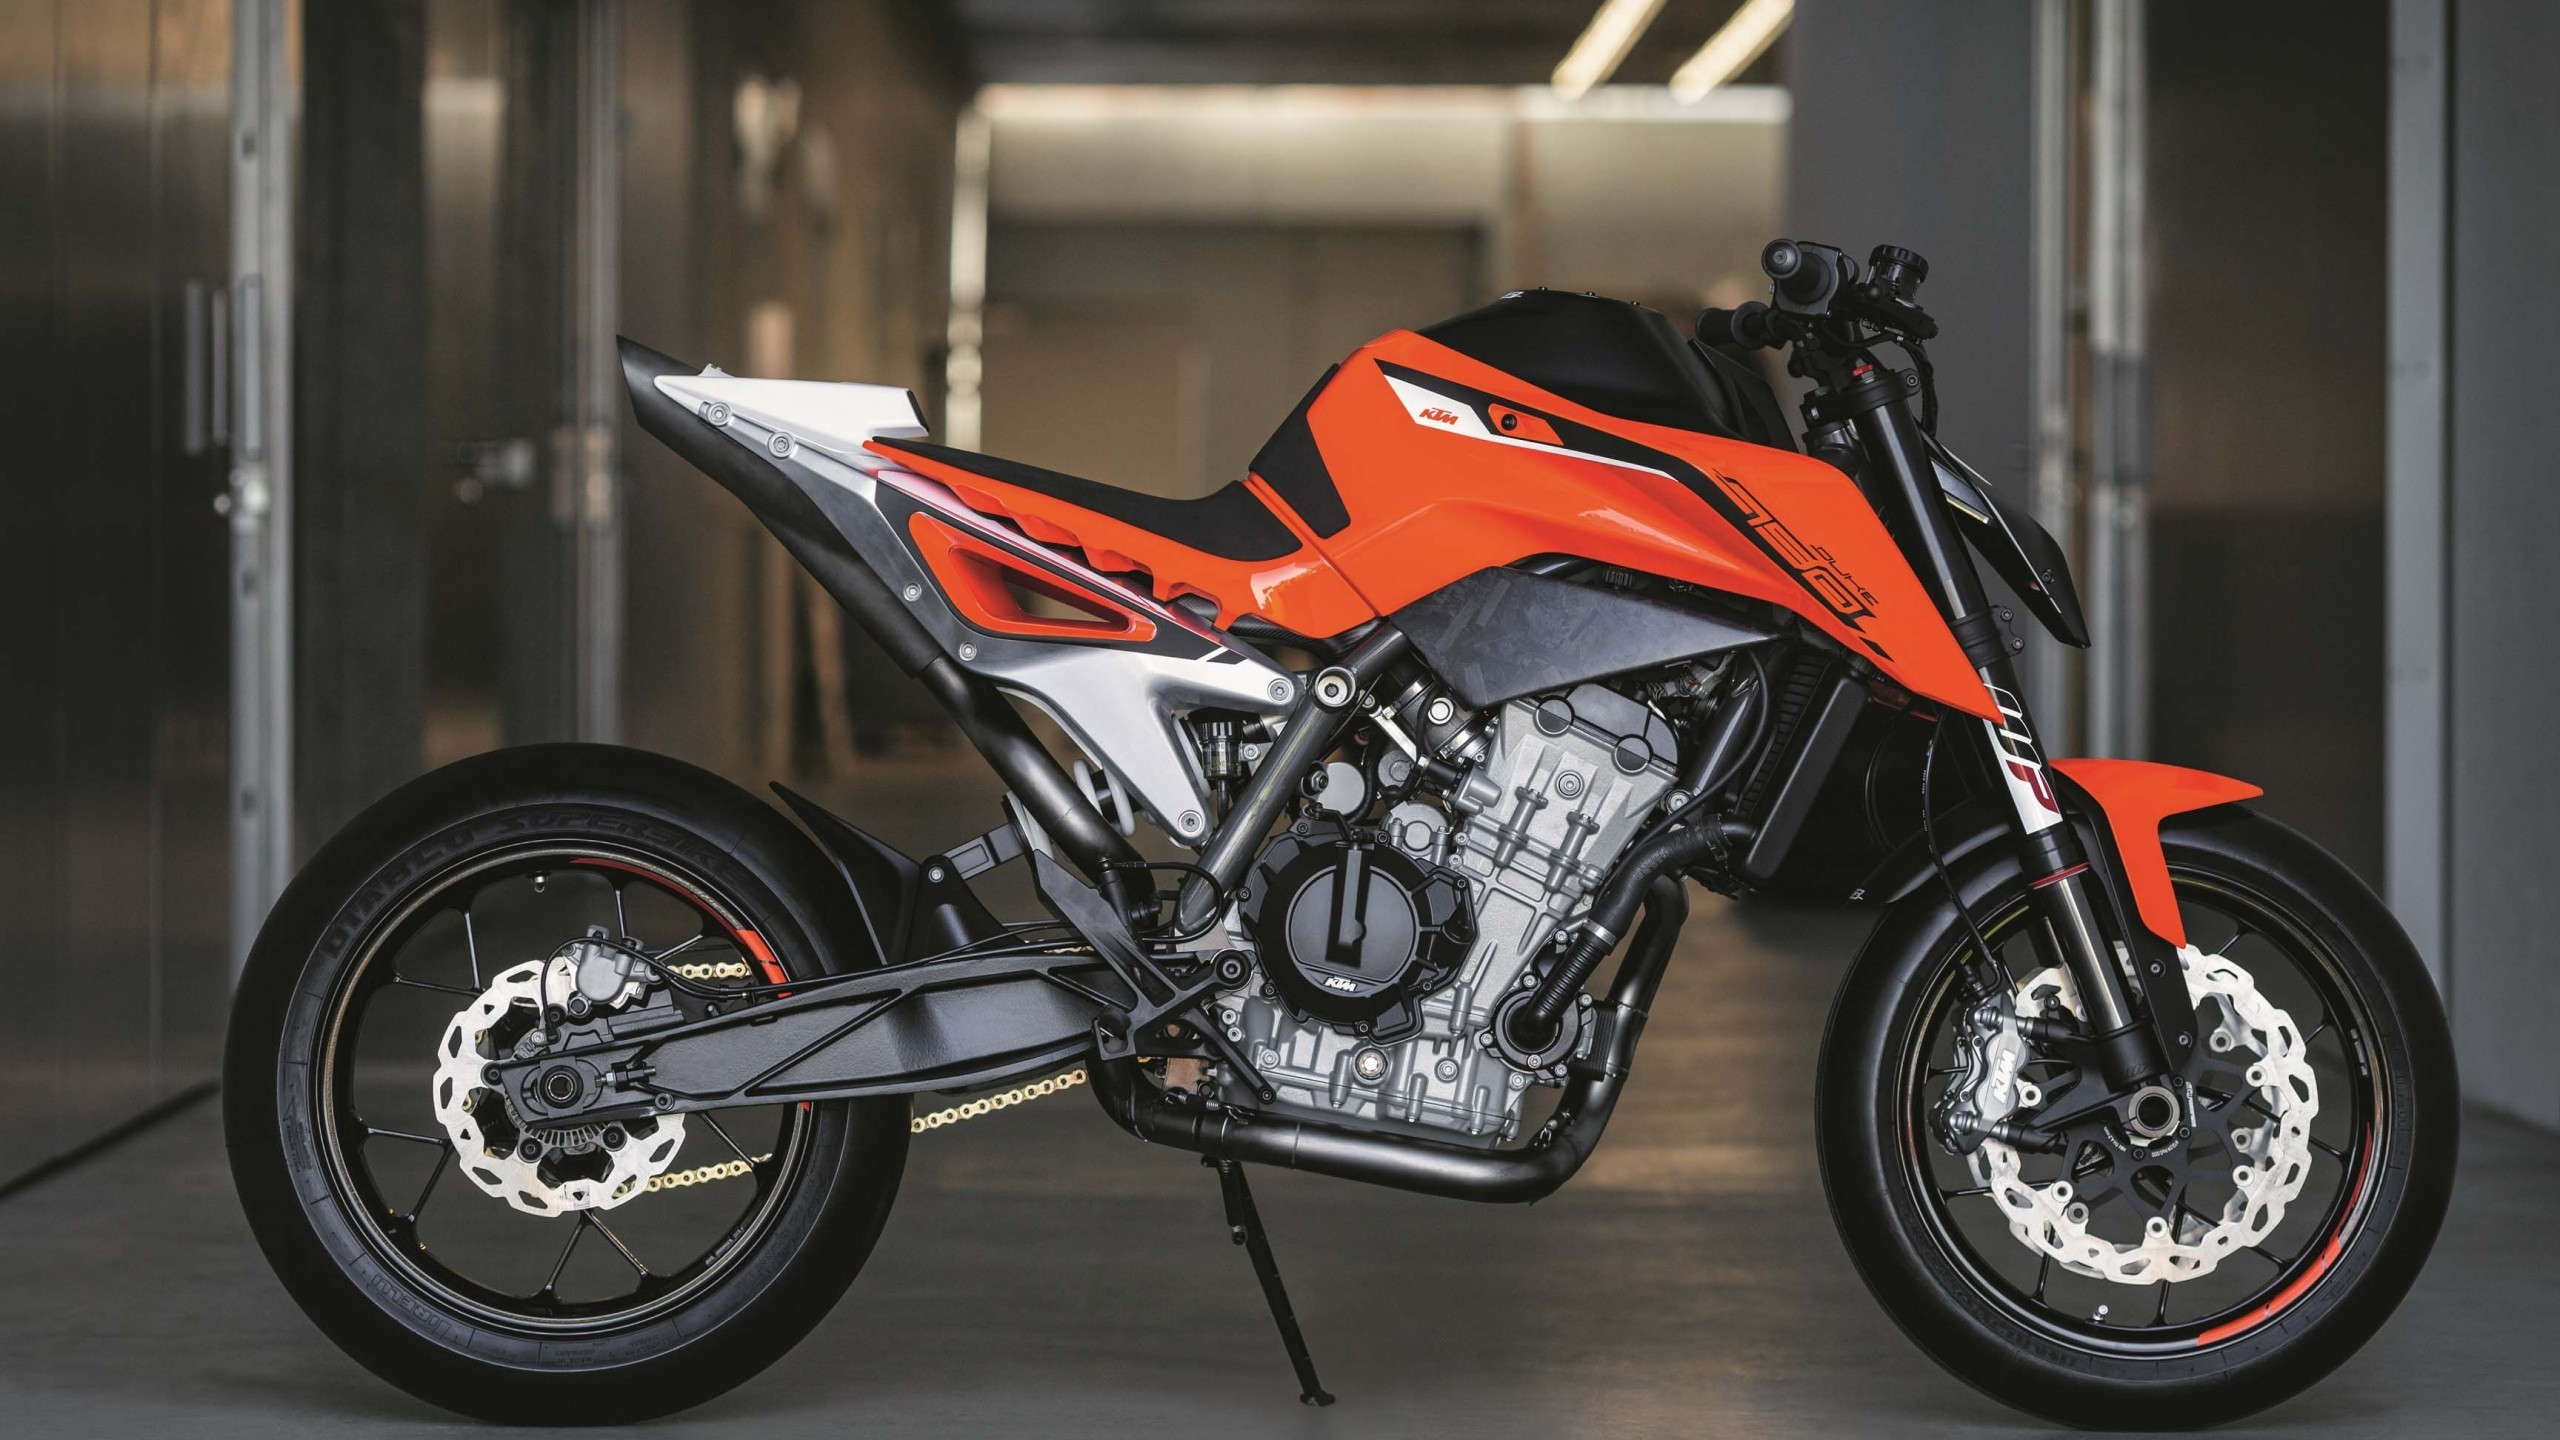 2560x1440 ...  Wallpaper KTM 790 Duke, Prototype, 2017, HD, Automotive  Bikes, #